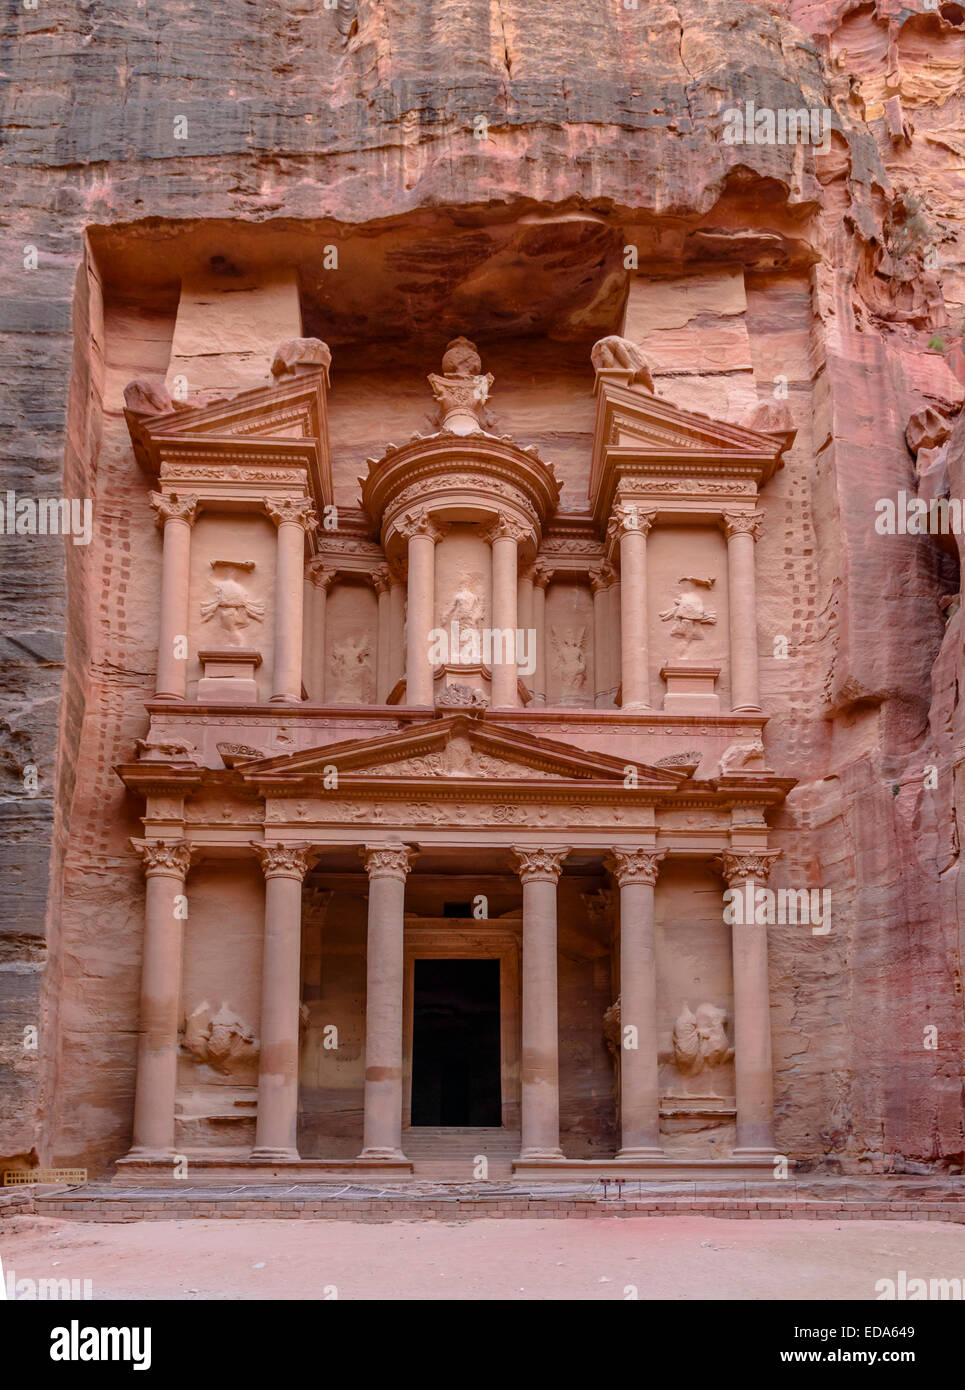 The Treasury in the  Ancient city of Petra carved out of the rock, Jordan - Stock Image